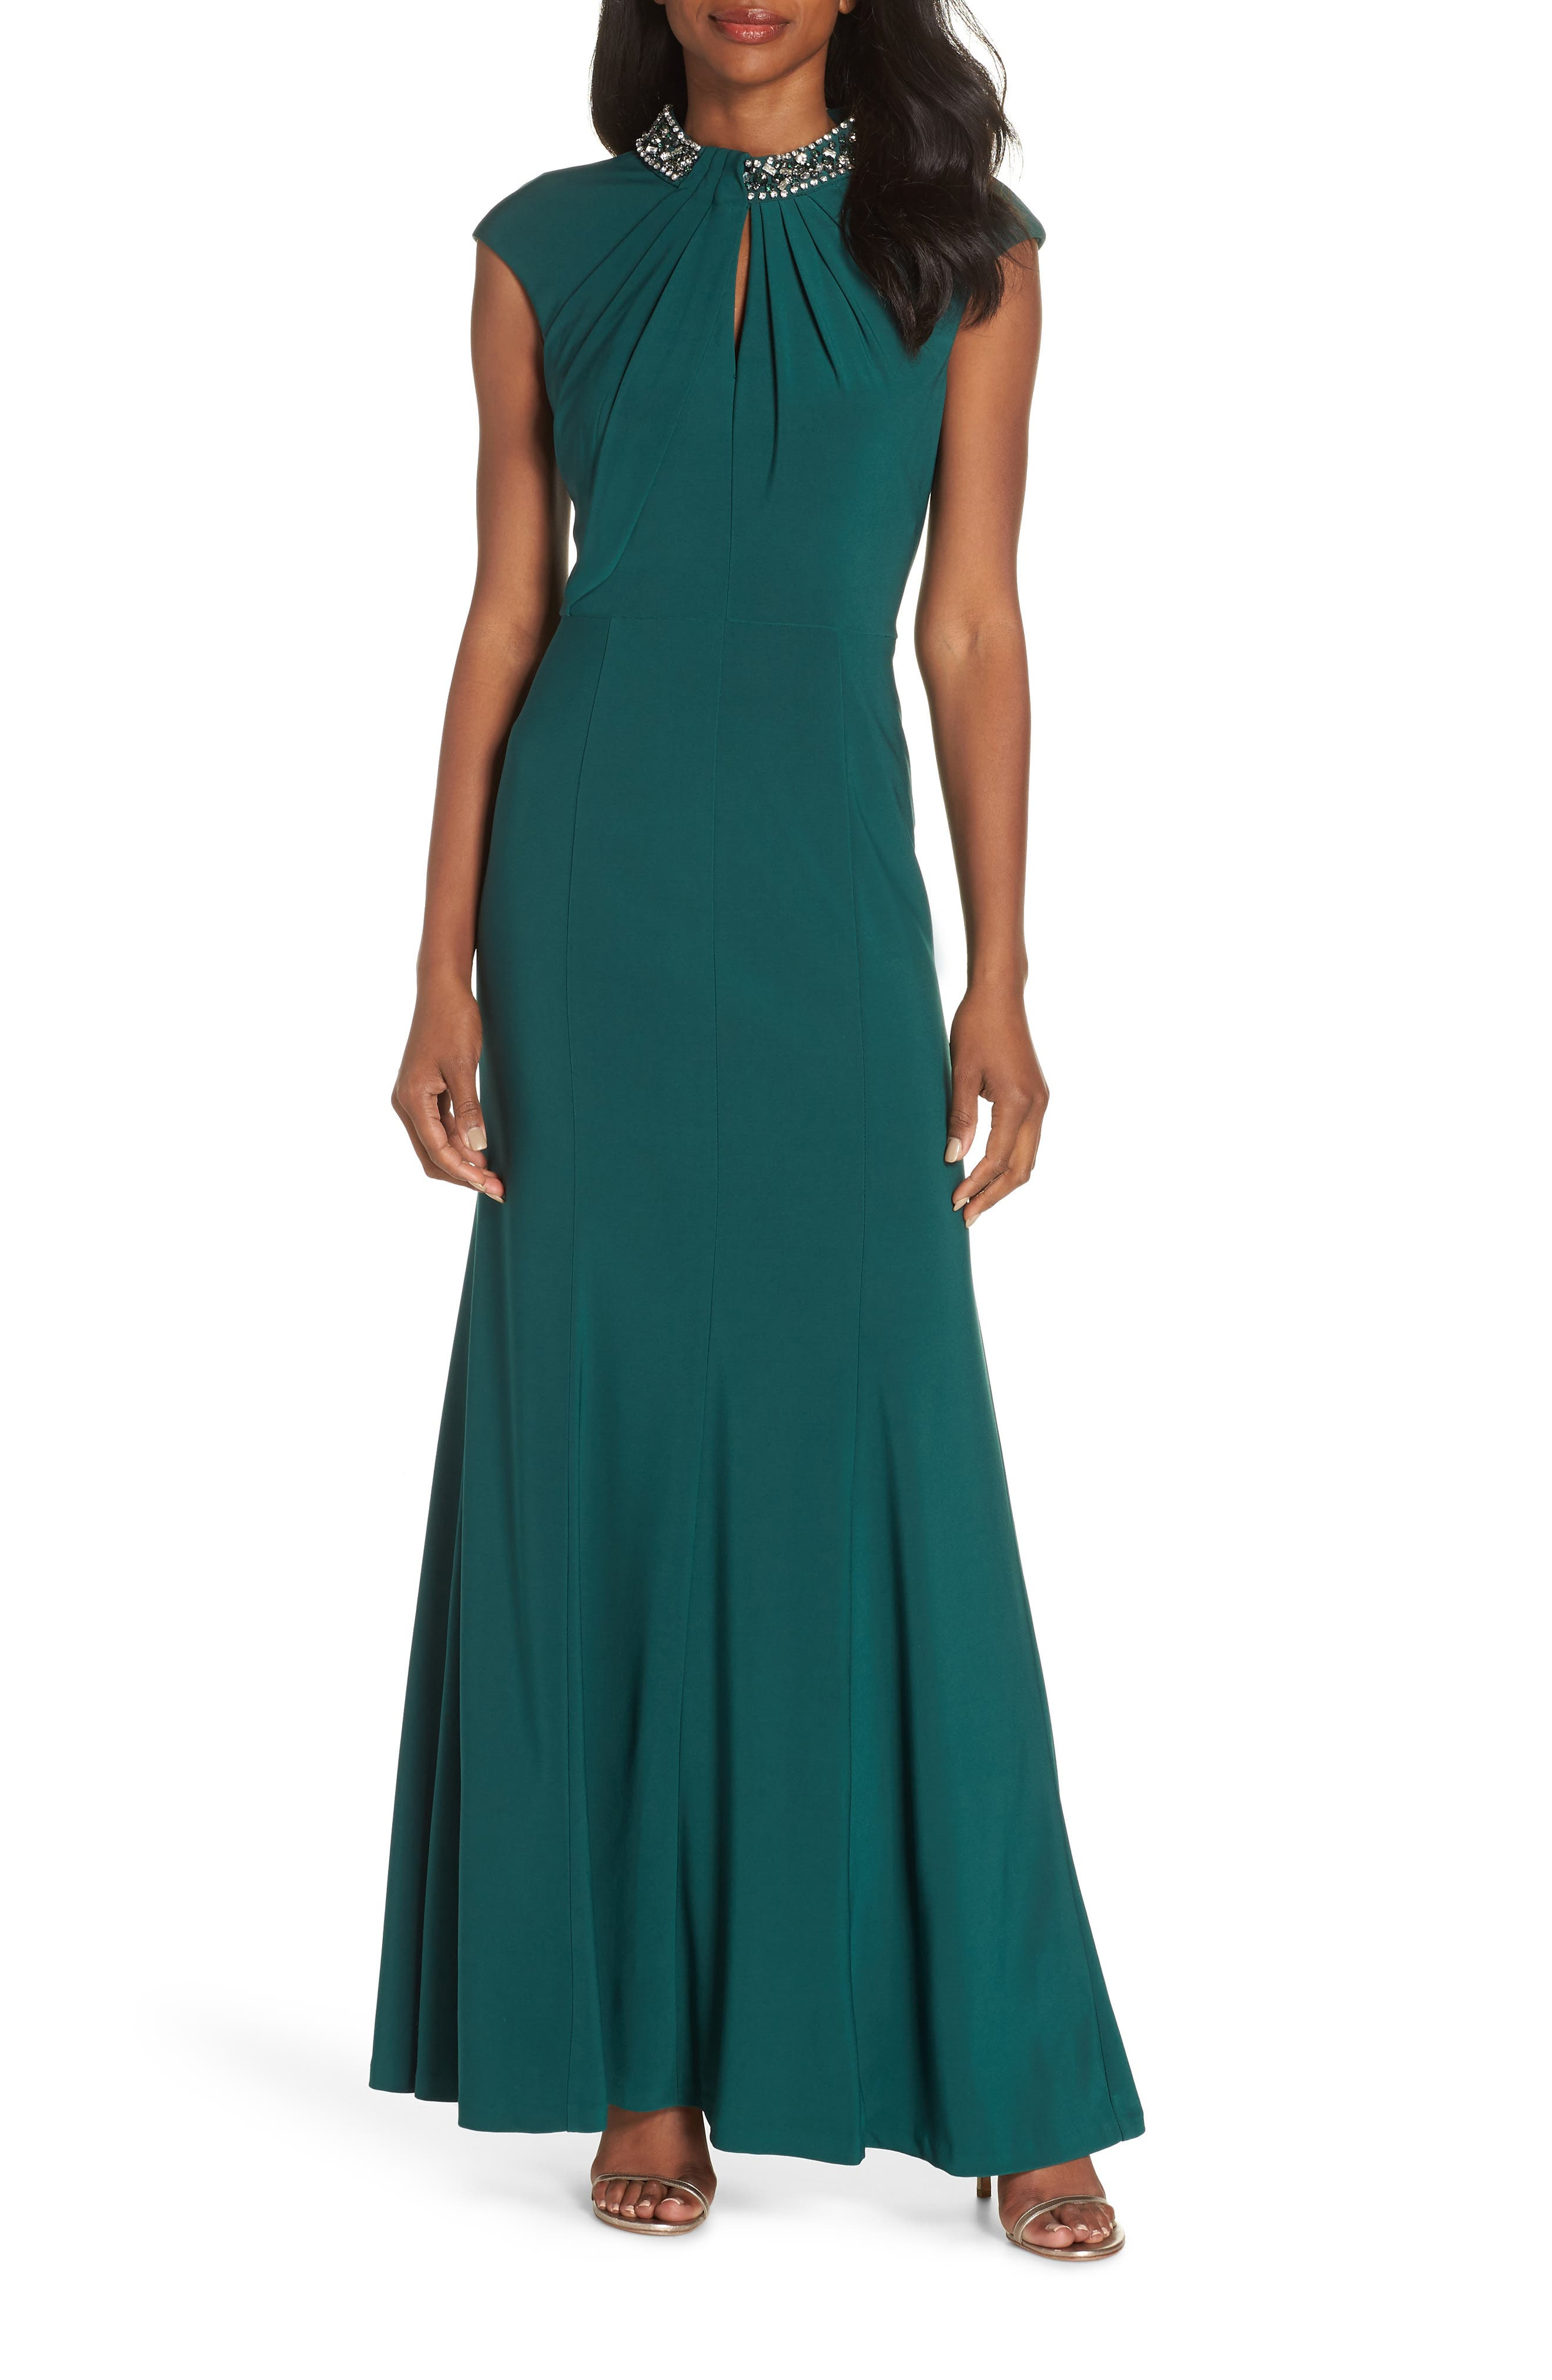 VINCE CAMUTO, Cap Sleeve Gown, Main thumbnail 1, color, 301